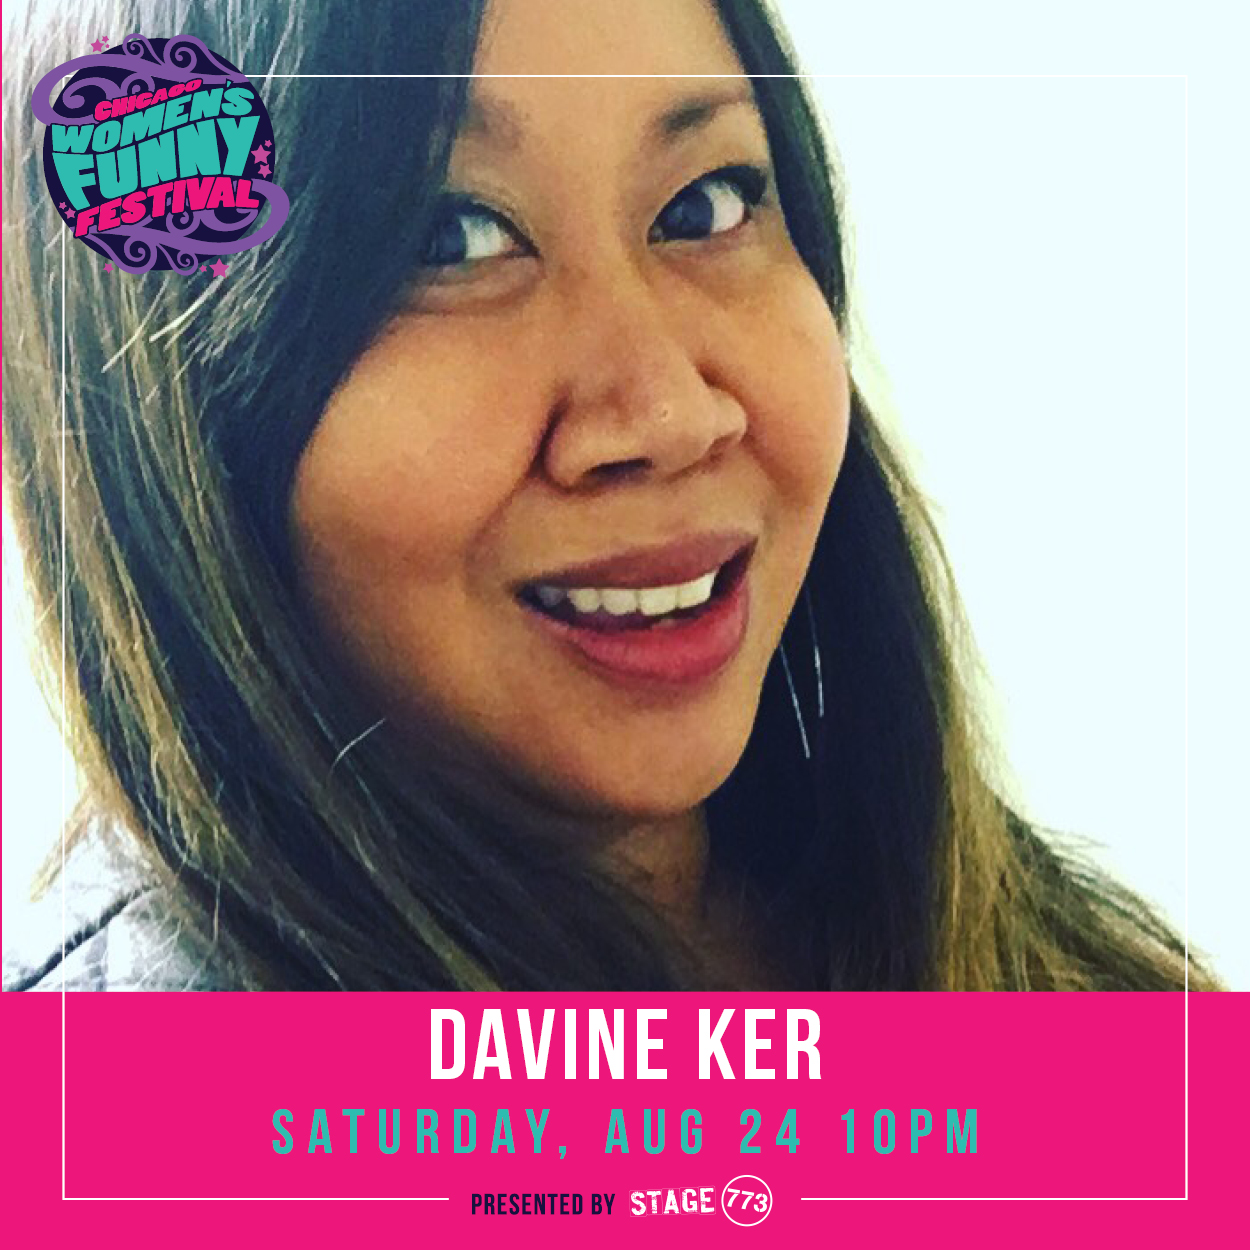 DavineKer_Saturday_10PM_CWFF20195.jpg